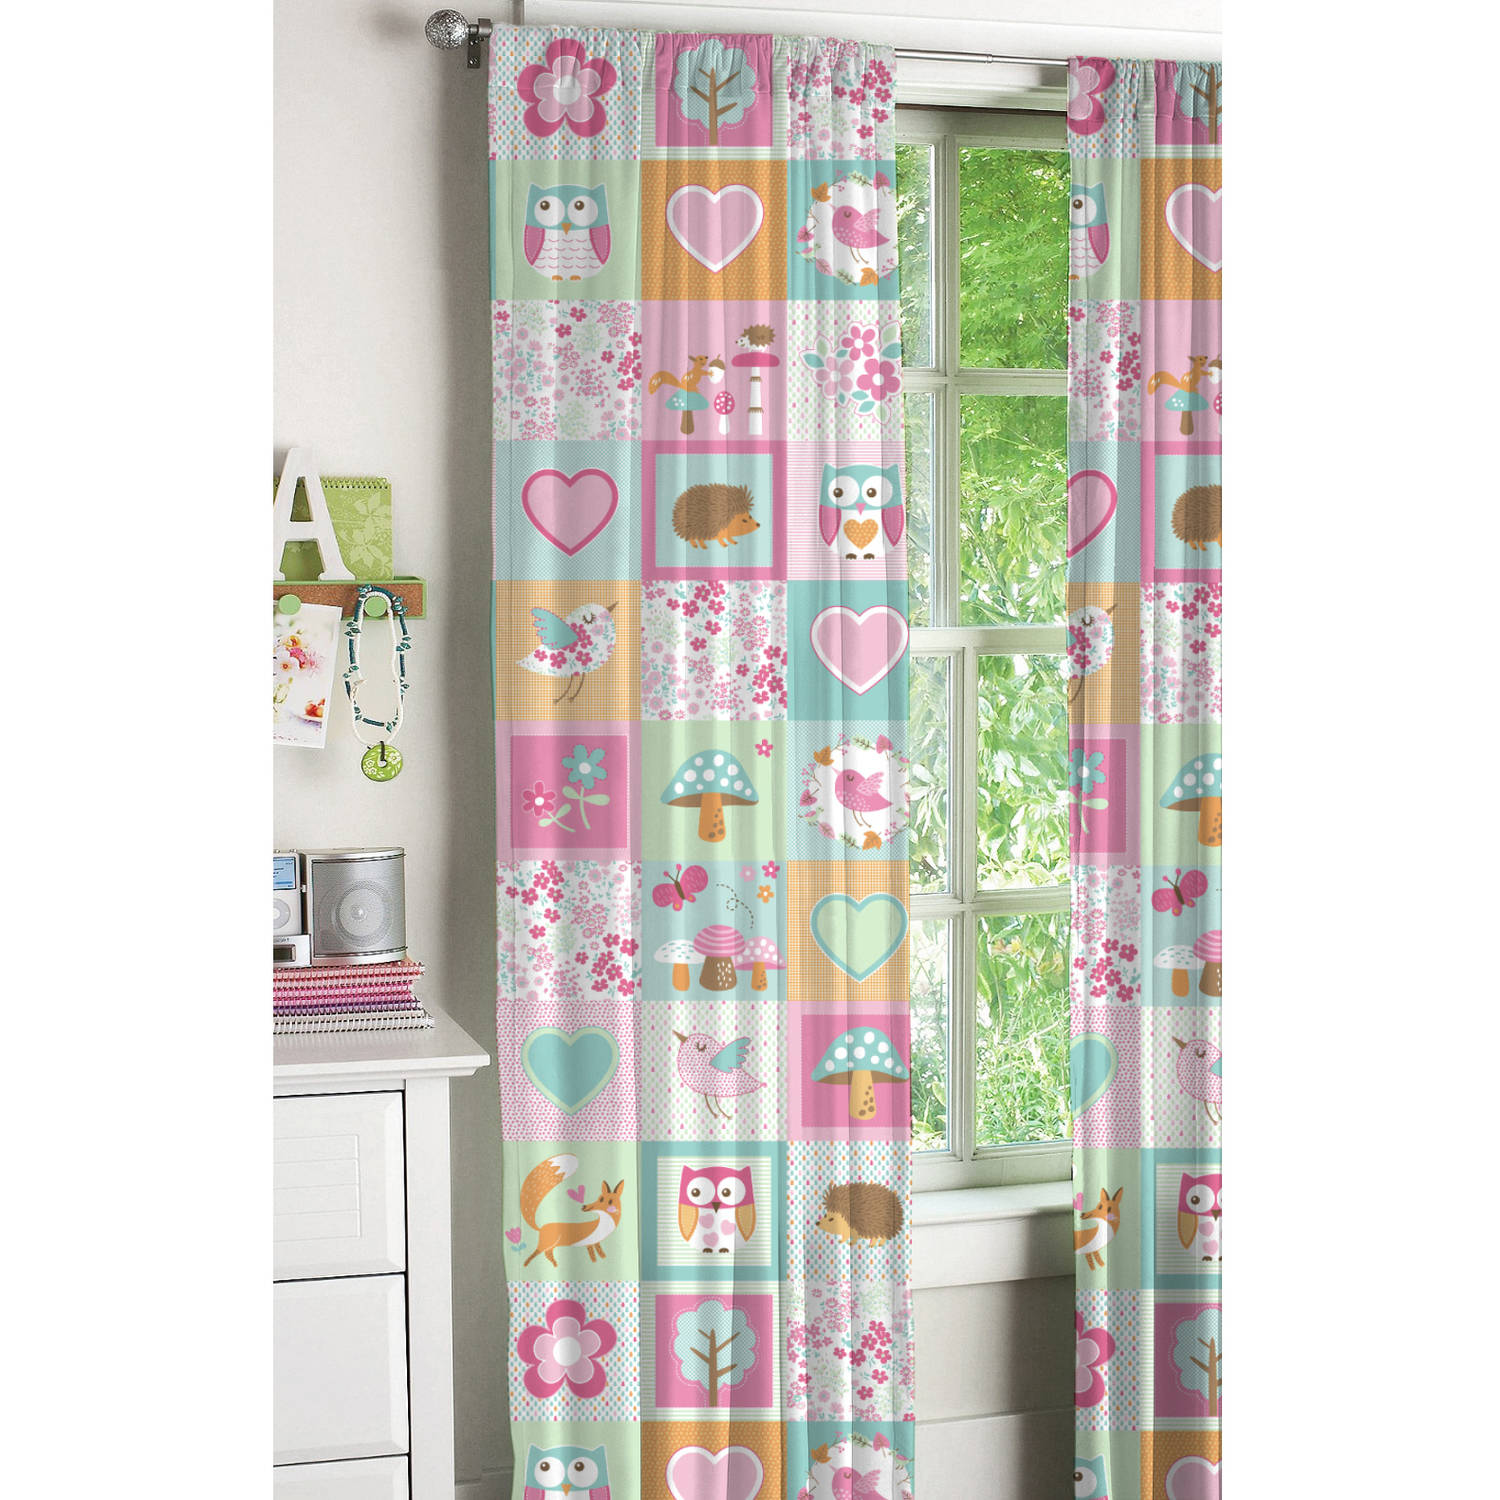 Mainstays Woodland Safari Friends Girls Bedroom Curtain Panel by Idea Nuova